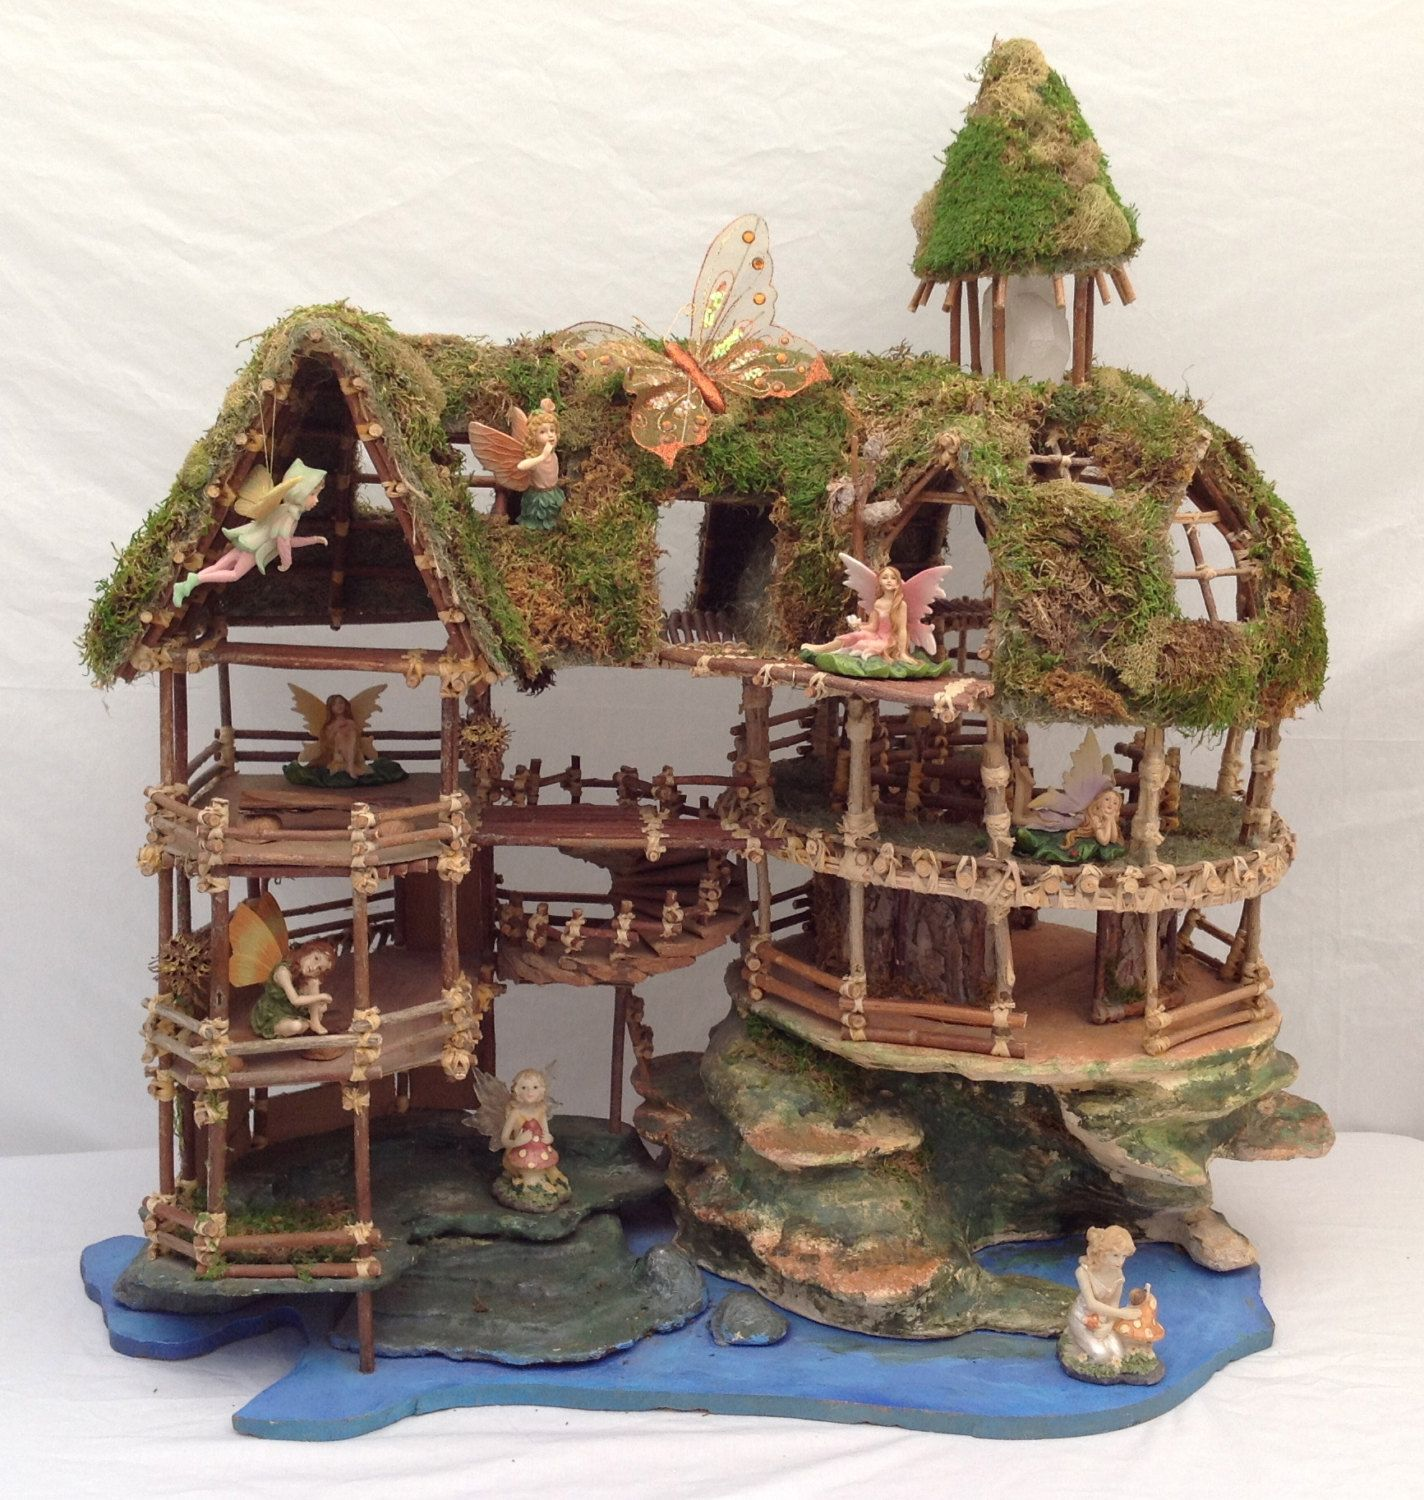 Gazebo Fairy House Kit 8 By 8 By 12 Inches Tall Learn The